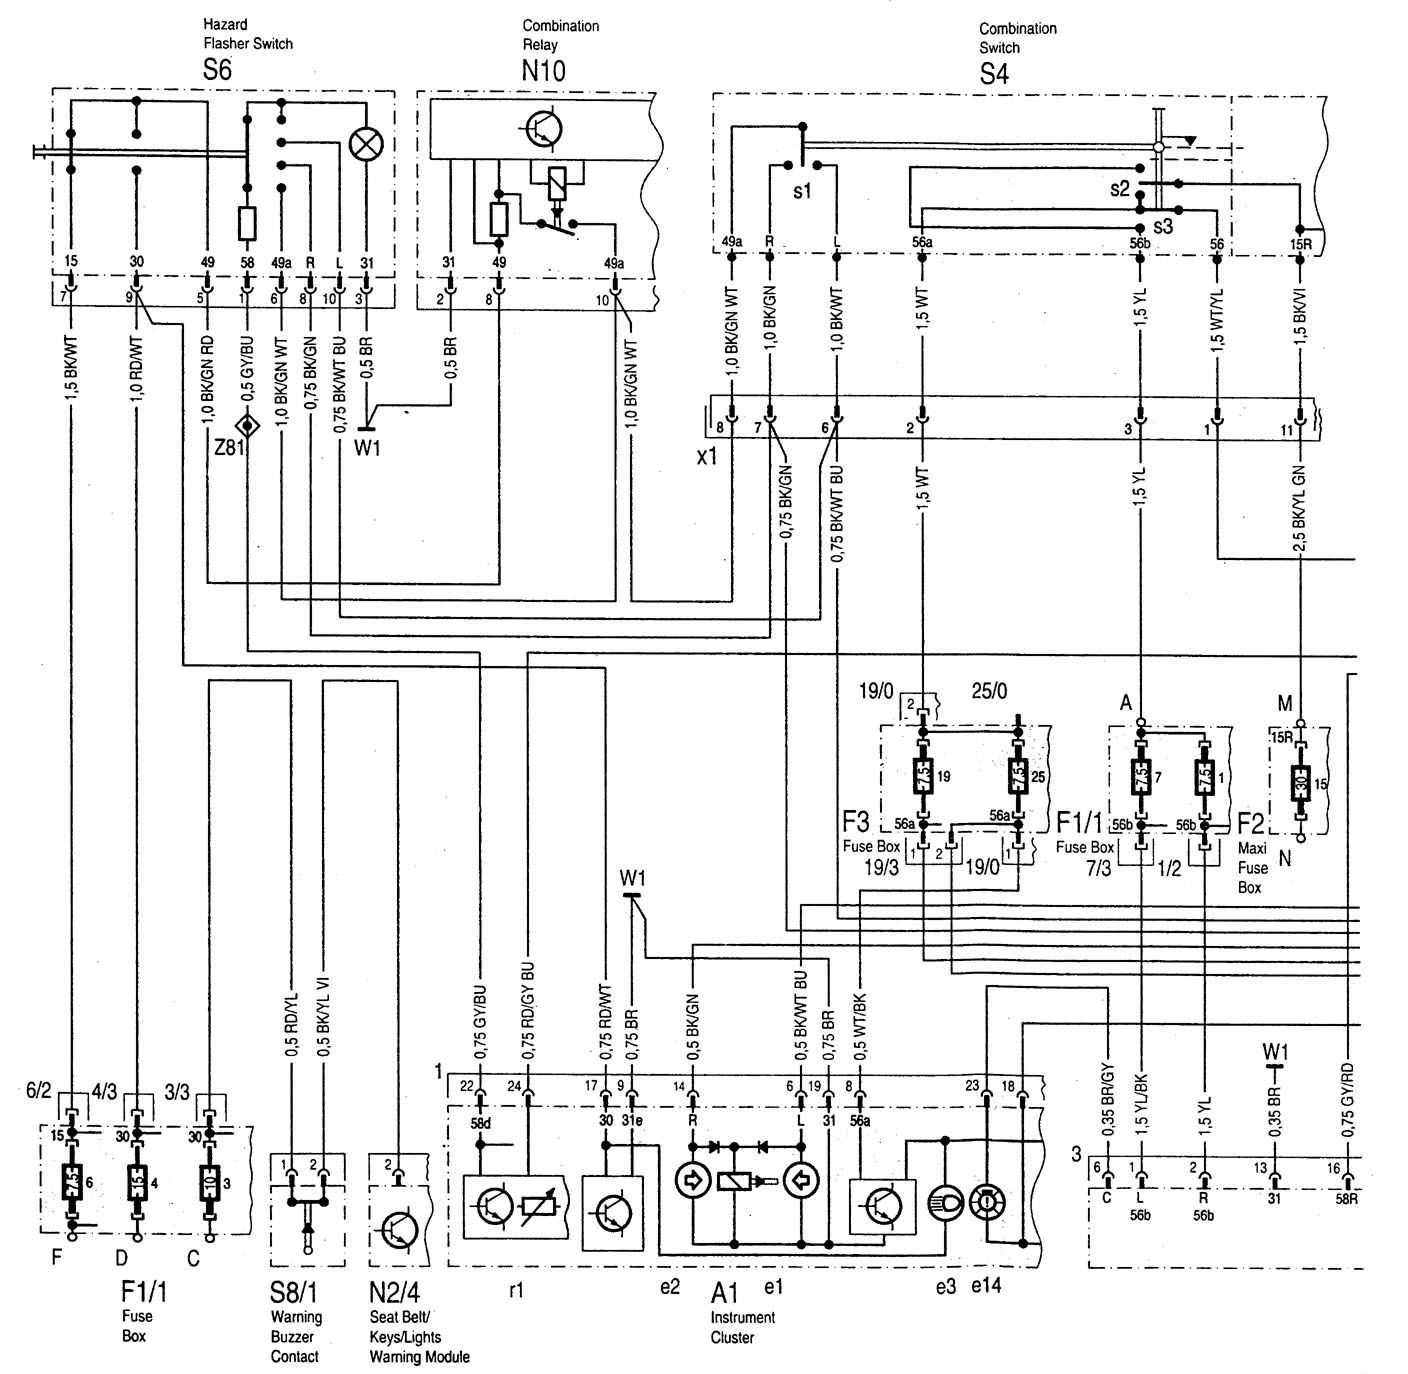 Mercedes Benz Interior Diagram Diy Enthusiasts Wiring Diagrams 2204 Battery For Wire Data Schema C220 1994 1996 Rh Carknowledge Info 1974 Relay